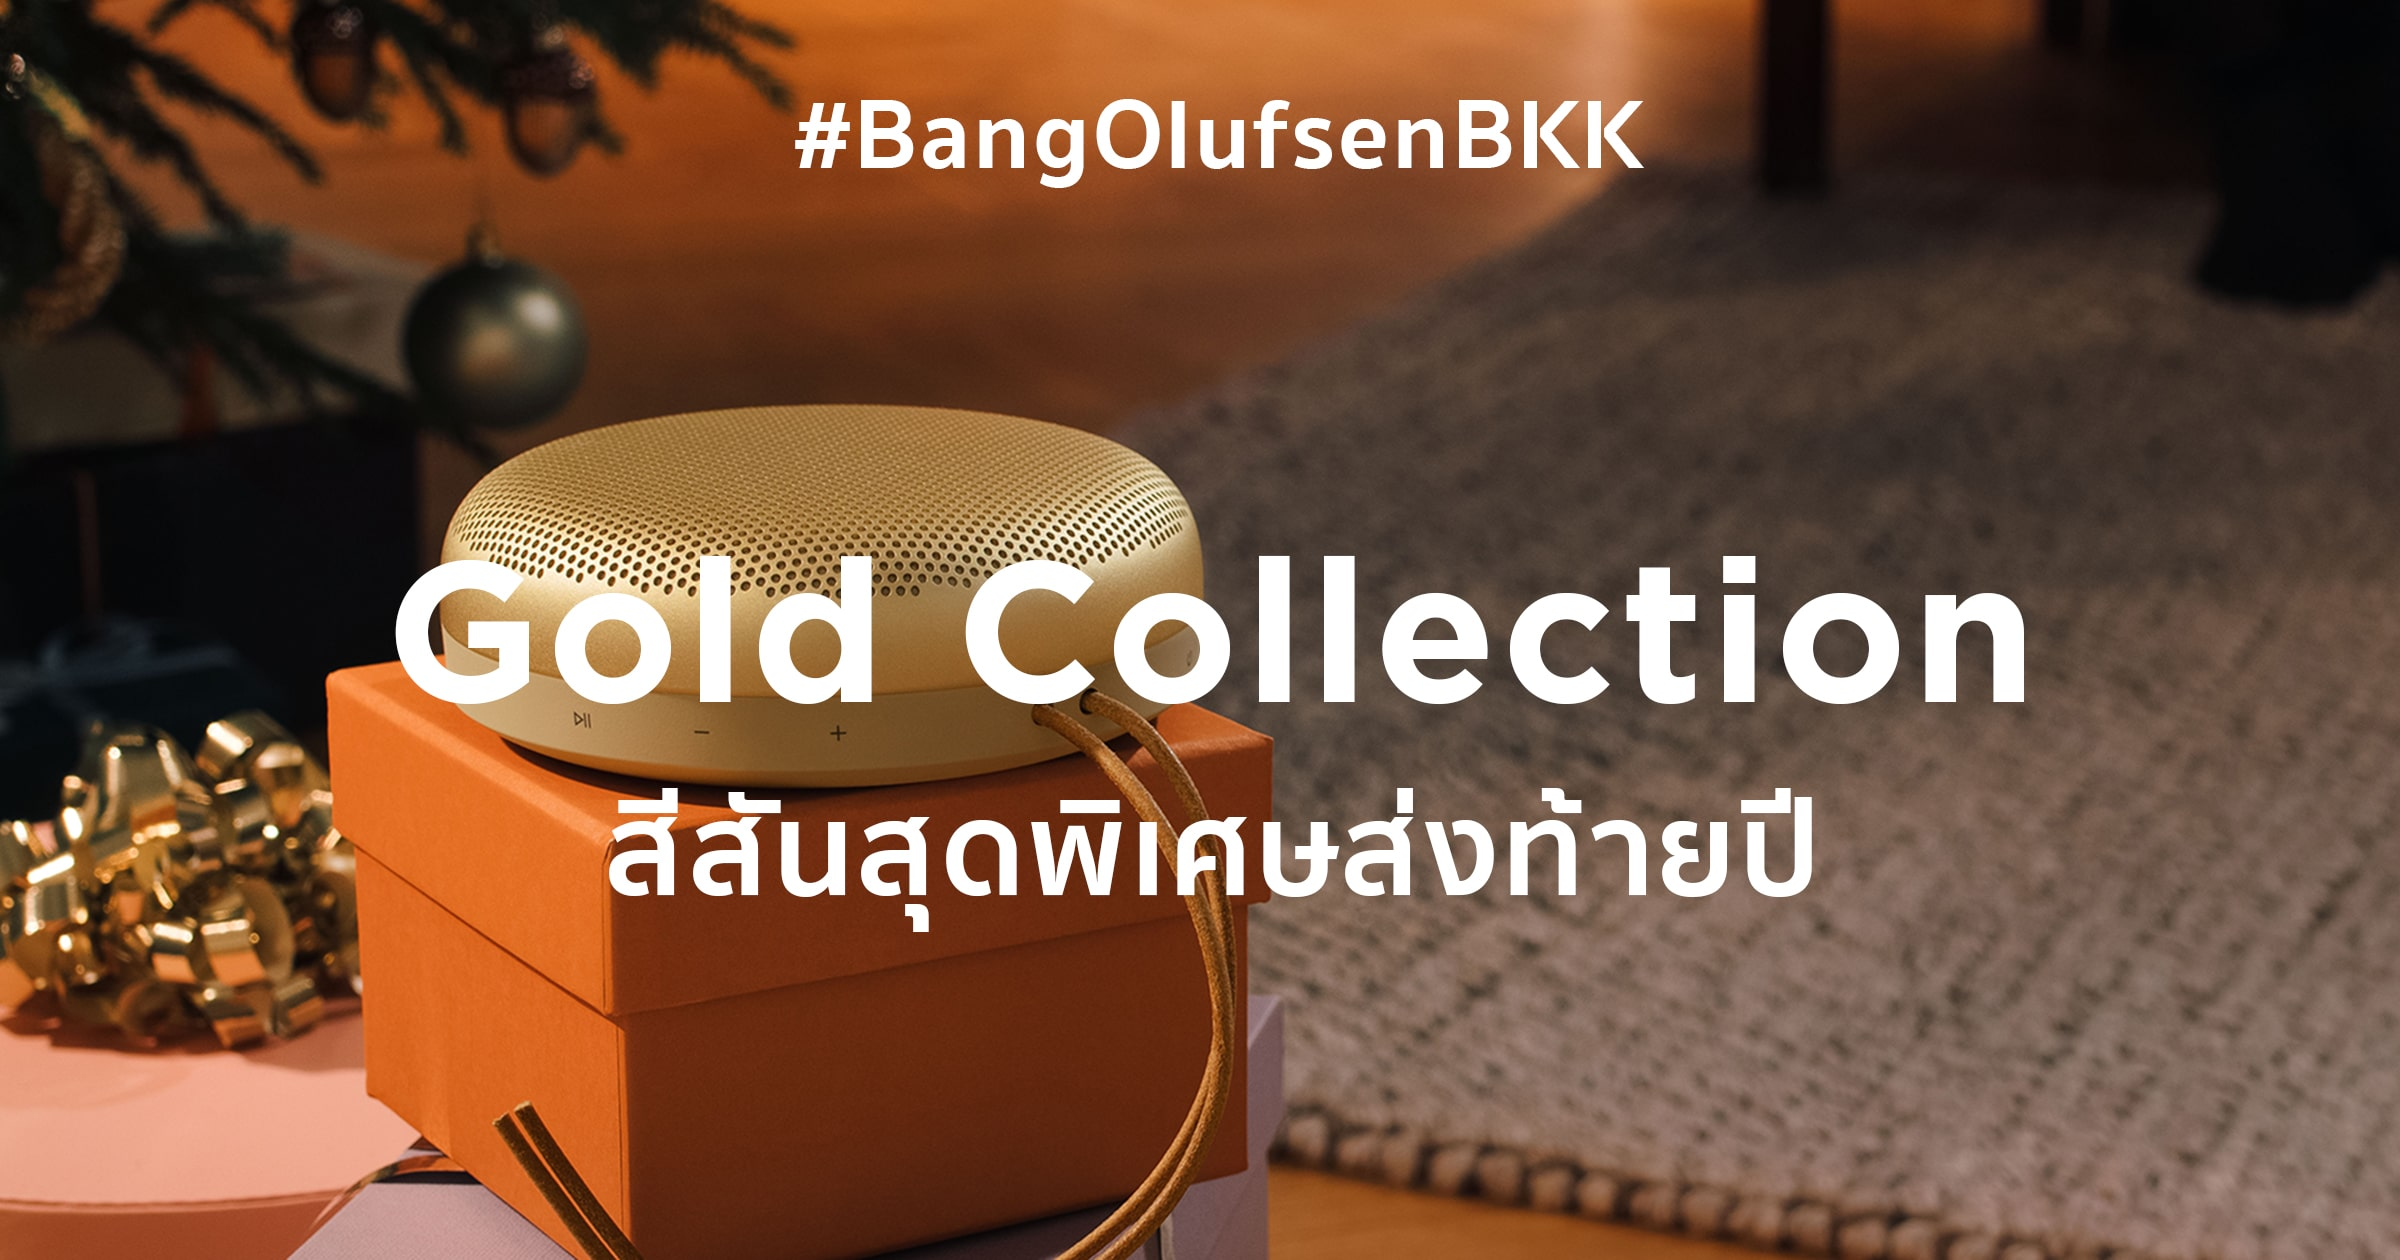 B&O gold-collection